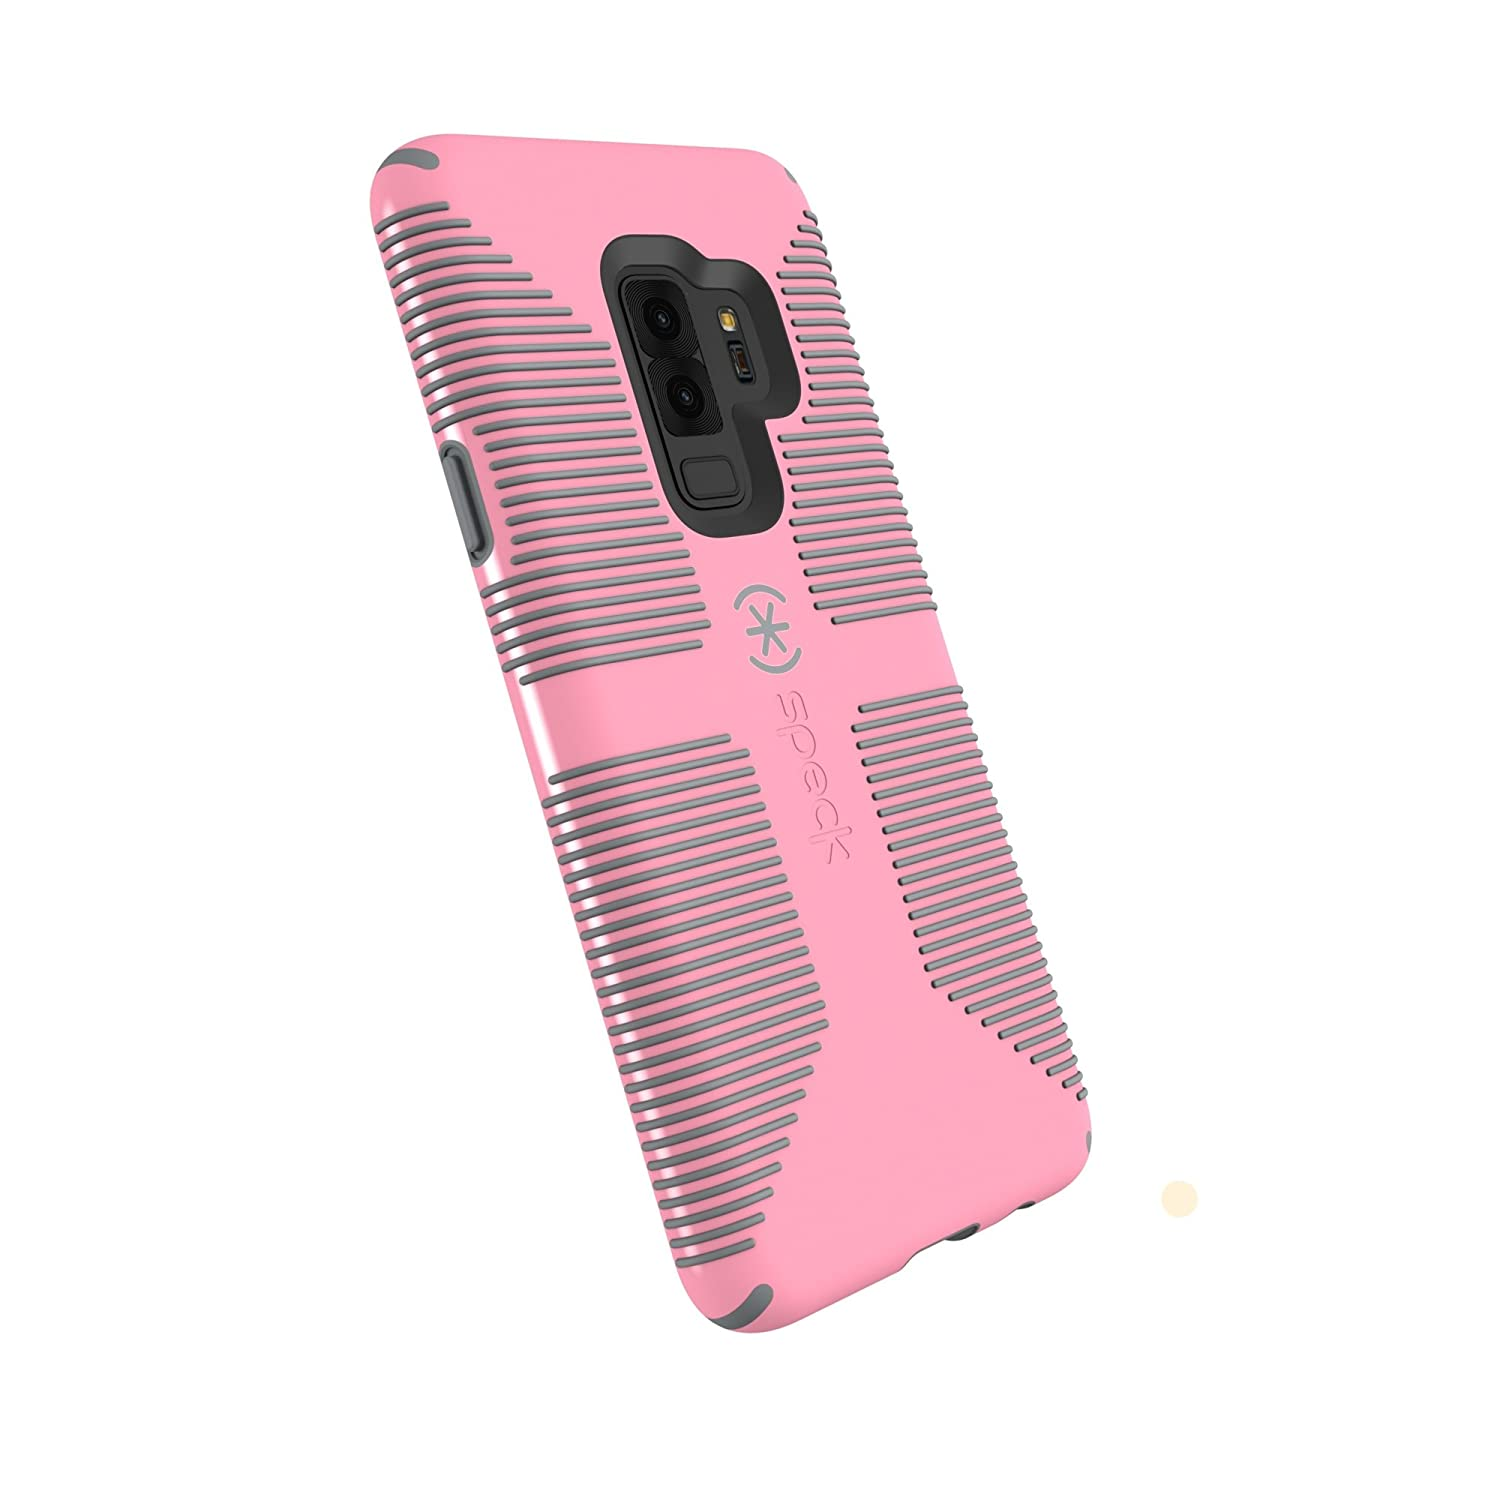 competitive price 82725 593bd Speck Products Compatible Phone Case for Samsung Galaxy S9 Plus, Candyshell  Grip Case, Island Pink/Gravel Grey